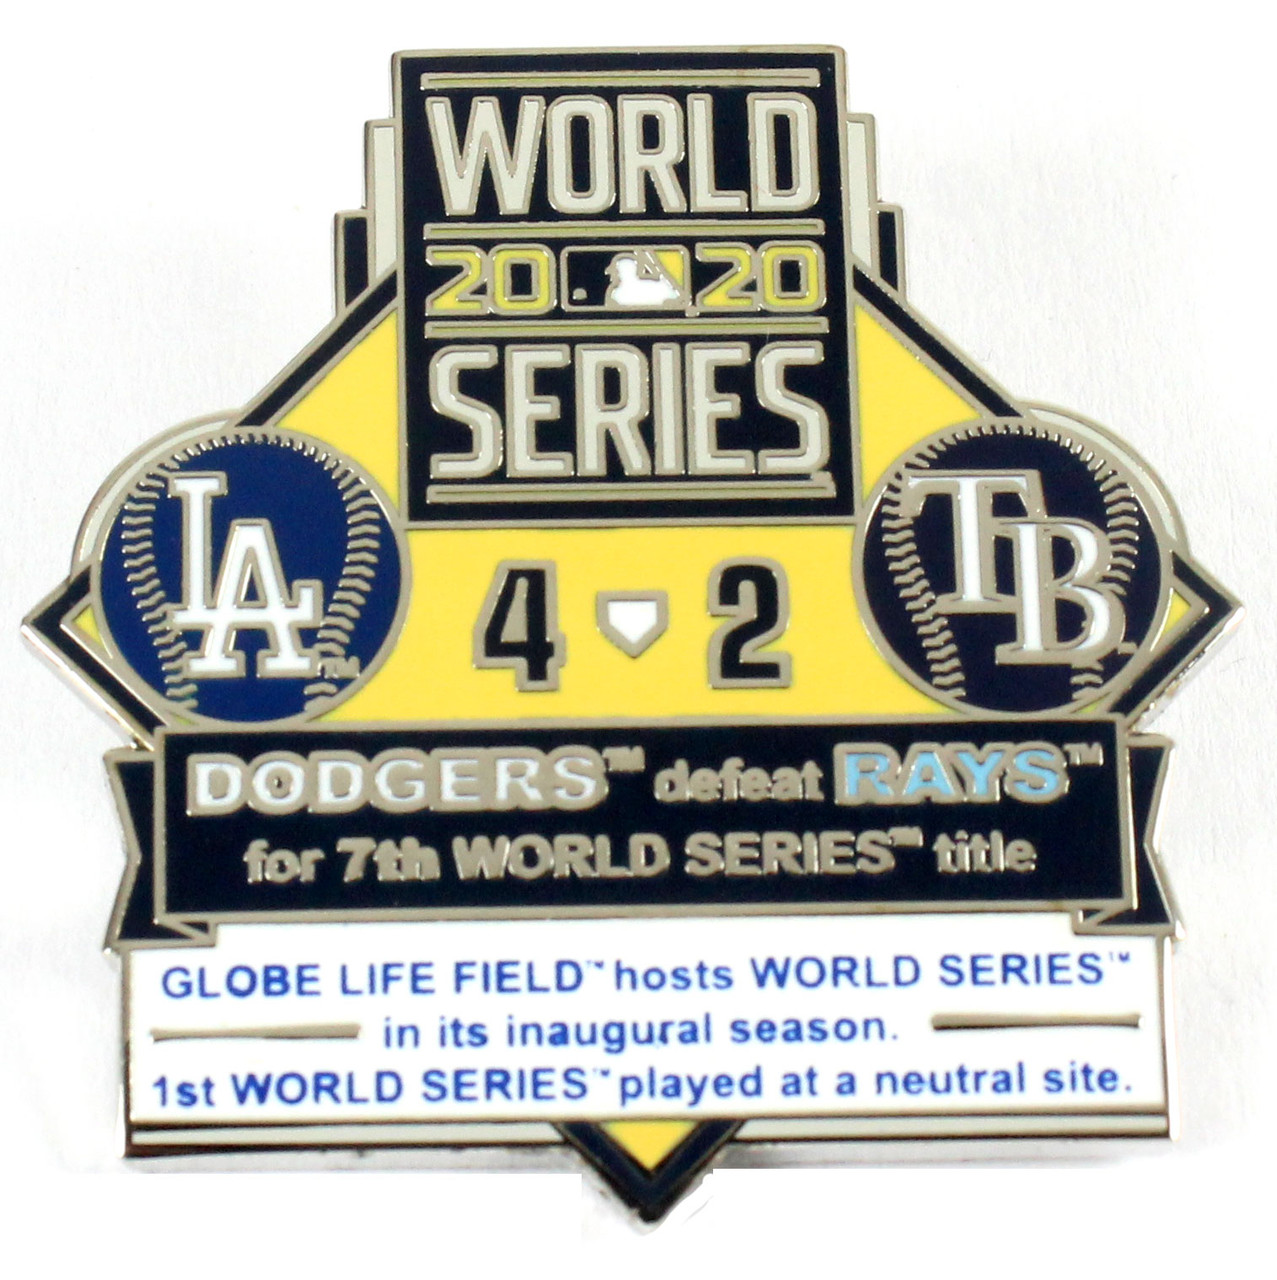 Rays 2020 World Series Commemorative Pin Set Limited Edition of 2,020 Dodgers vs